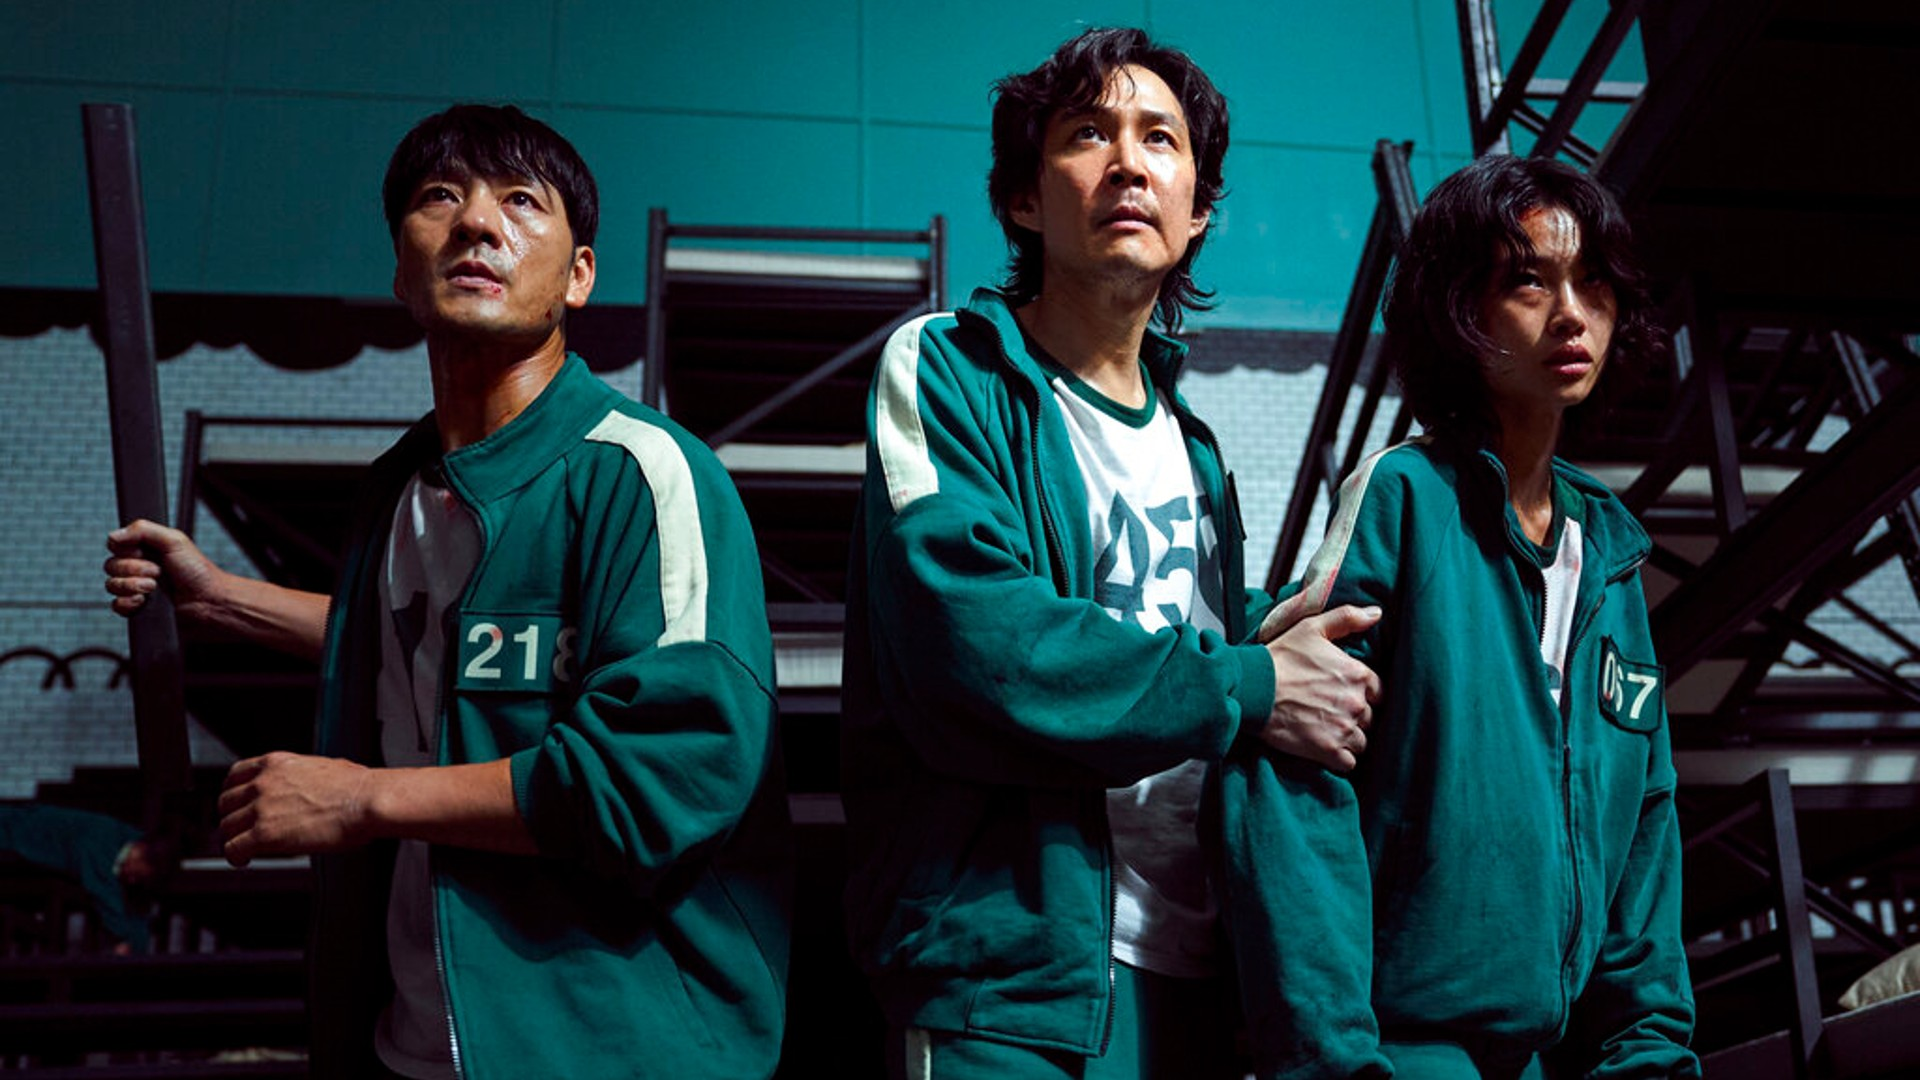 """This undated photo released by Netflix shows South Korean cast members, from left, Park Hae-soo, Lee Jung-jae and Jung Ho-yeon in a scene from """"Squid Game."""" (Youngkyu Park/Netflix via AP)"""